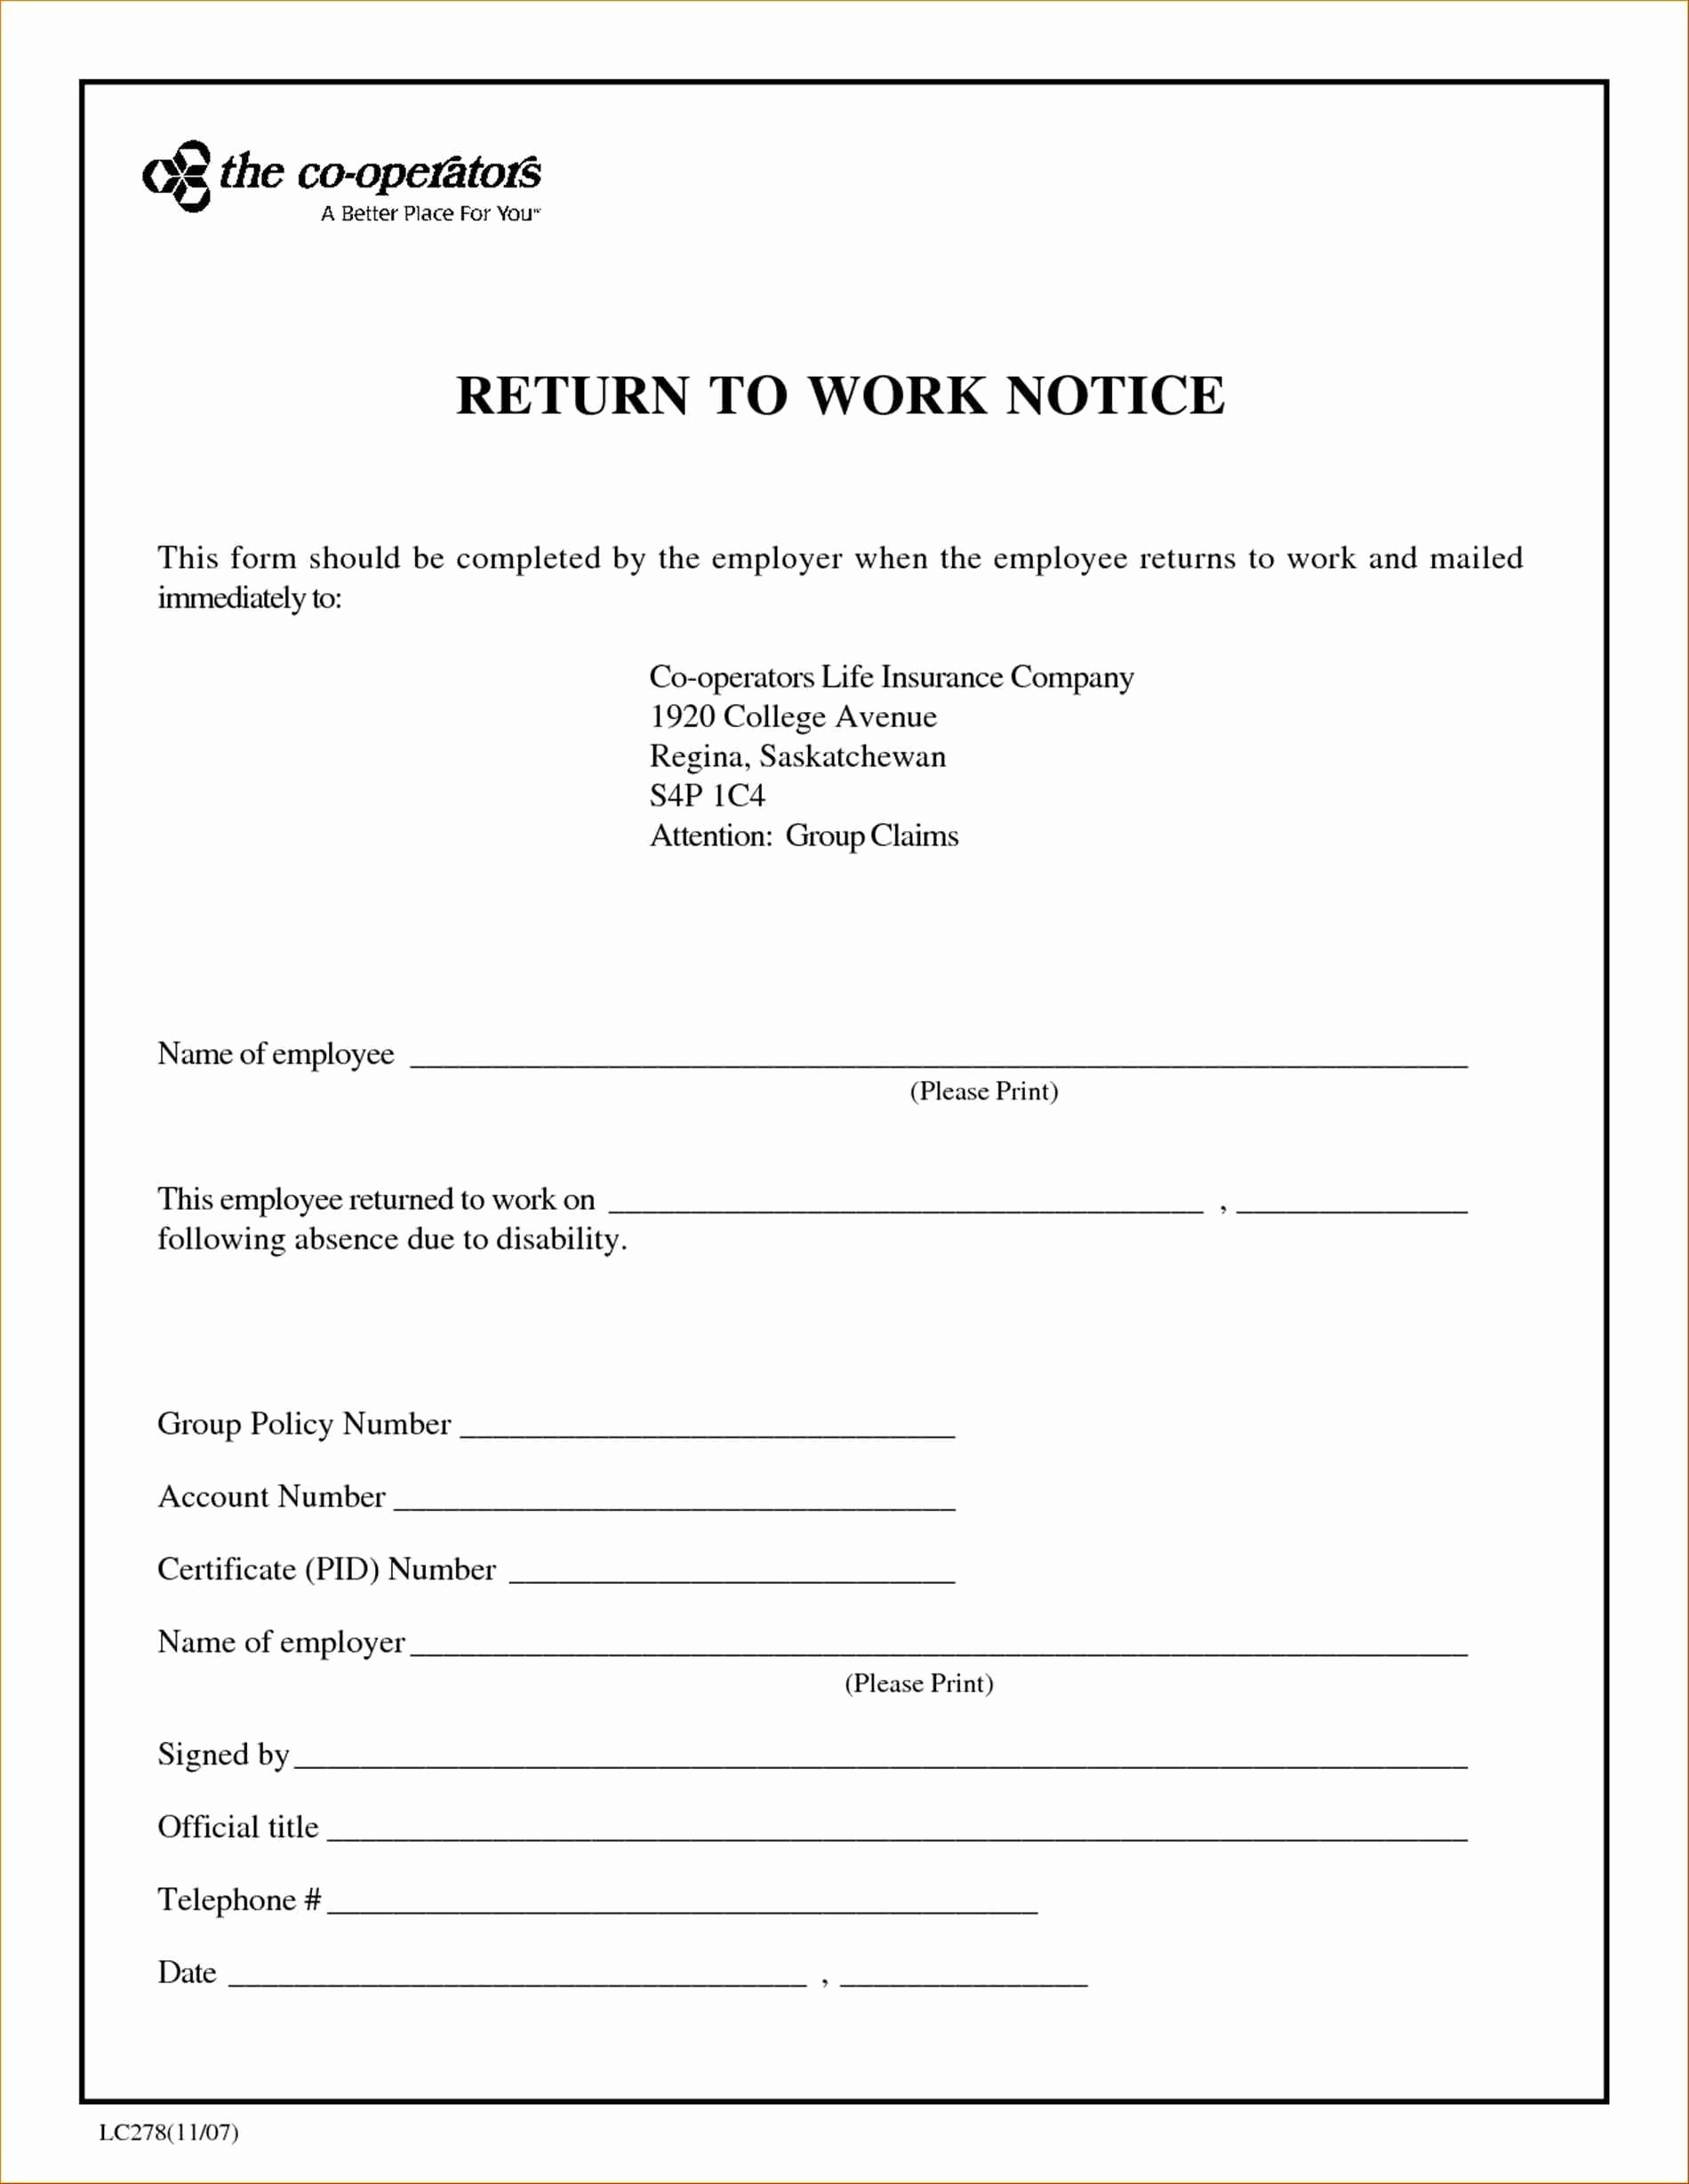 Fake Doctors Note Pdf Best Of Fake Doctors Note for Work or School Pdf